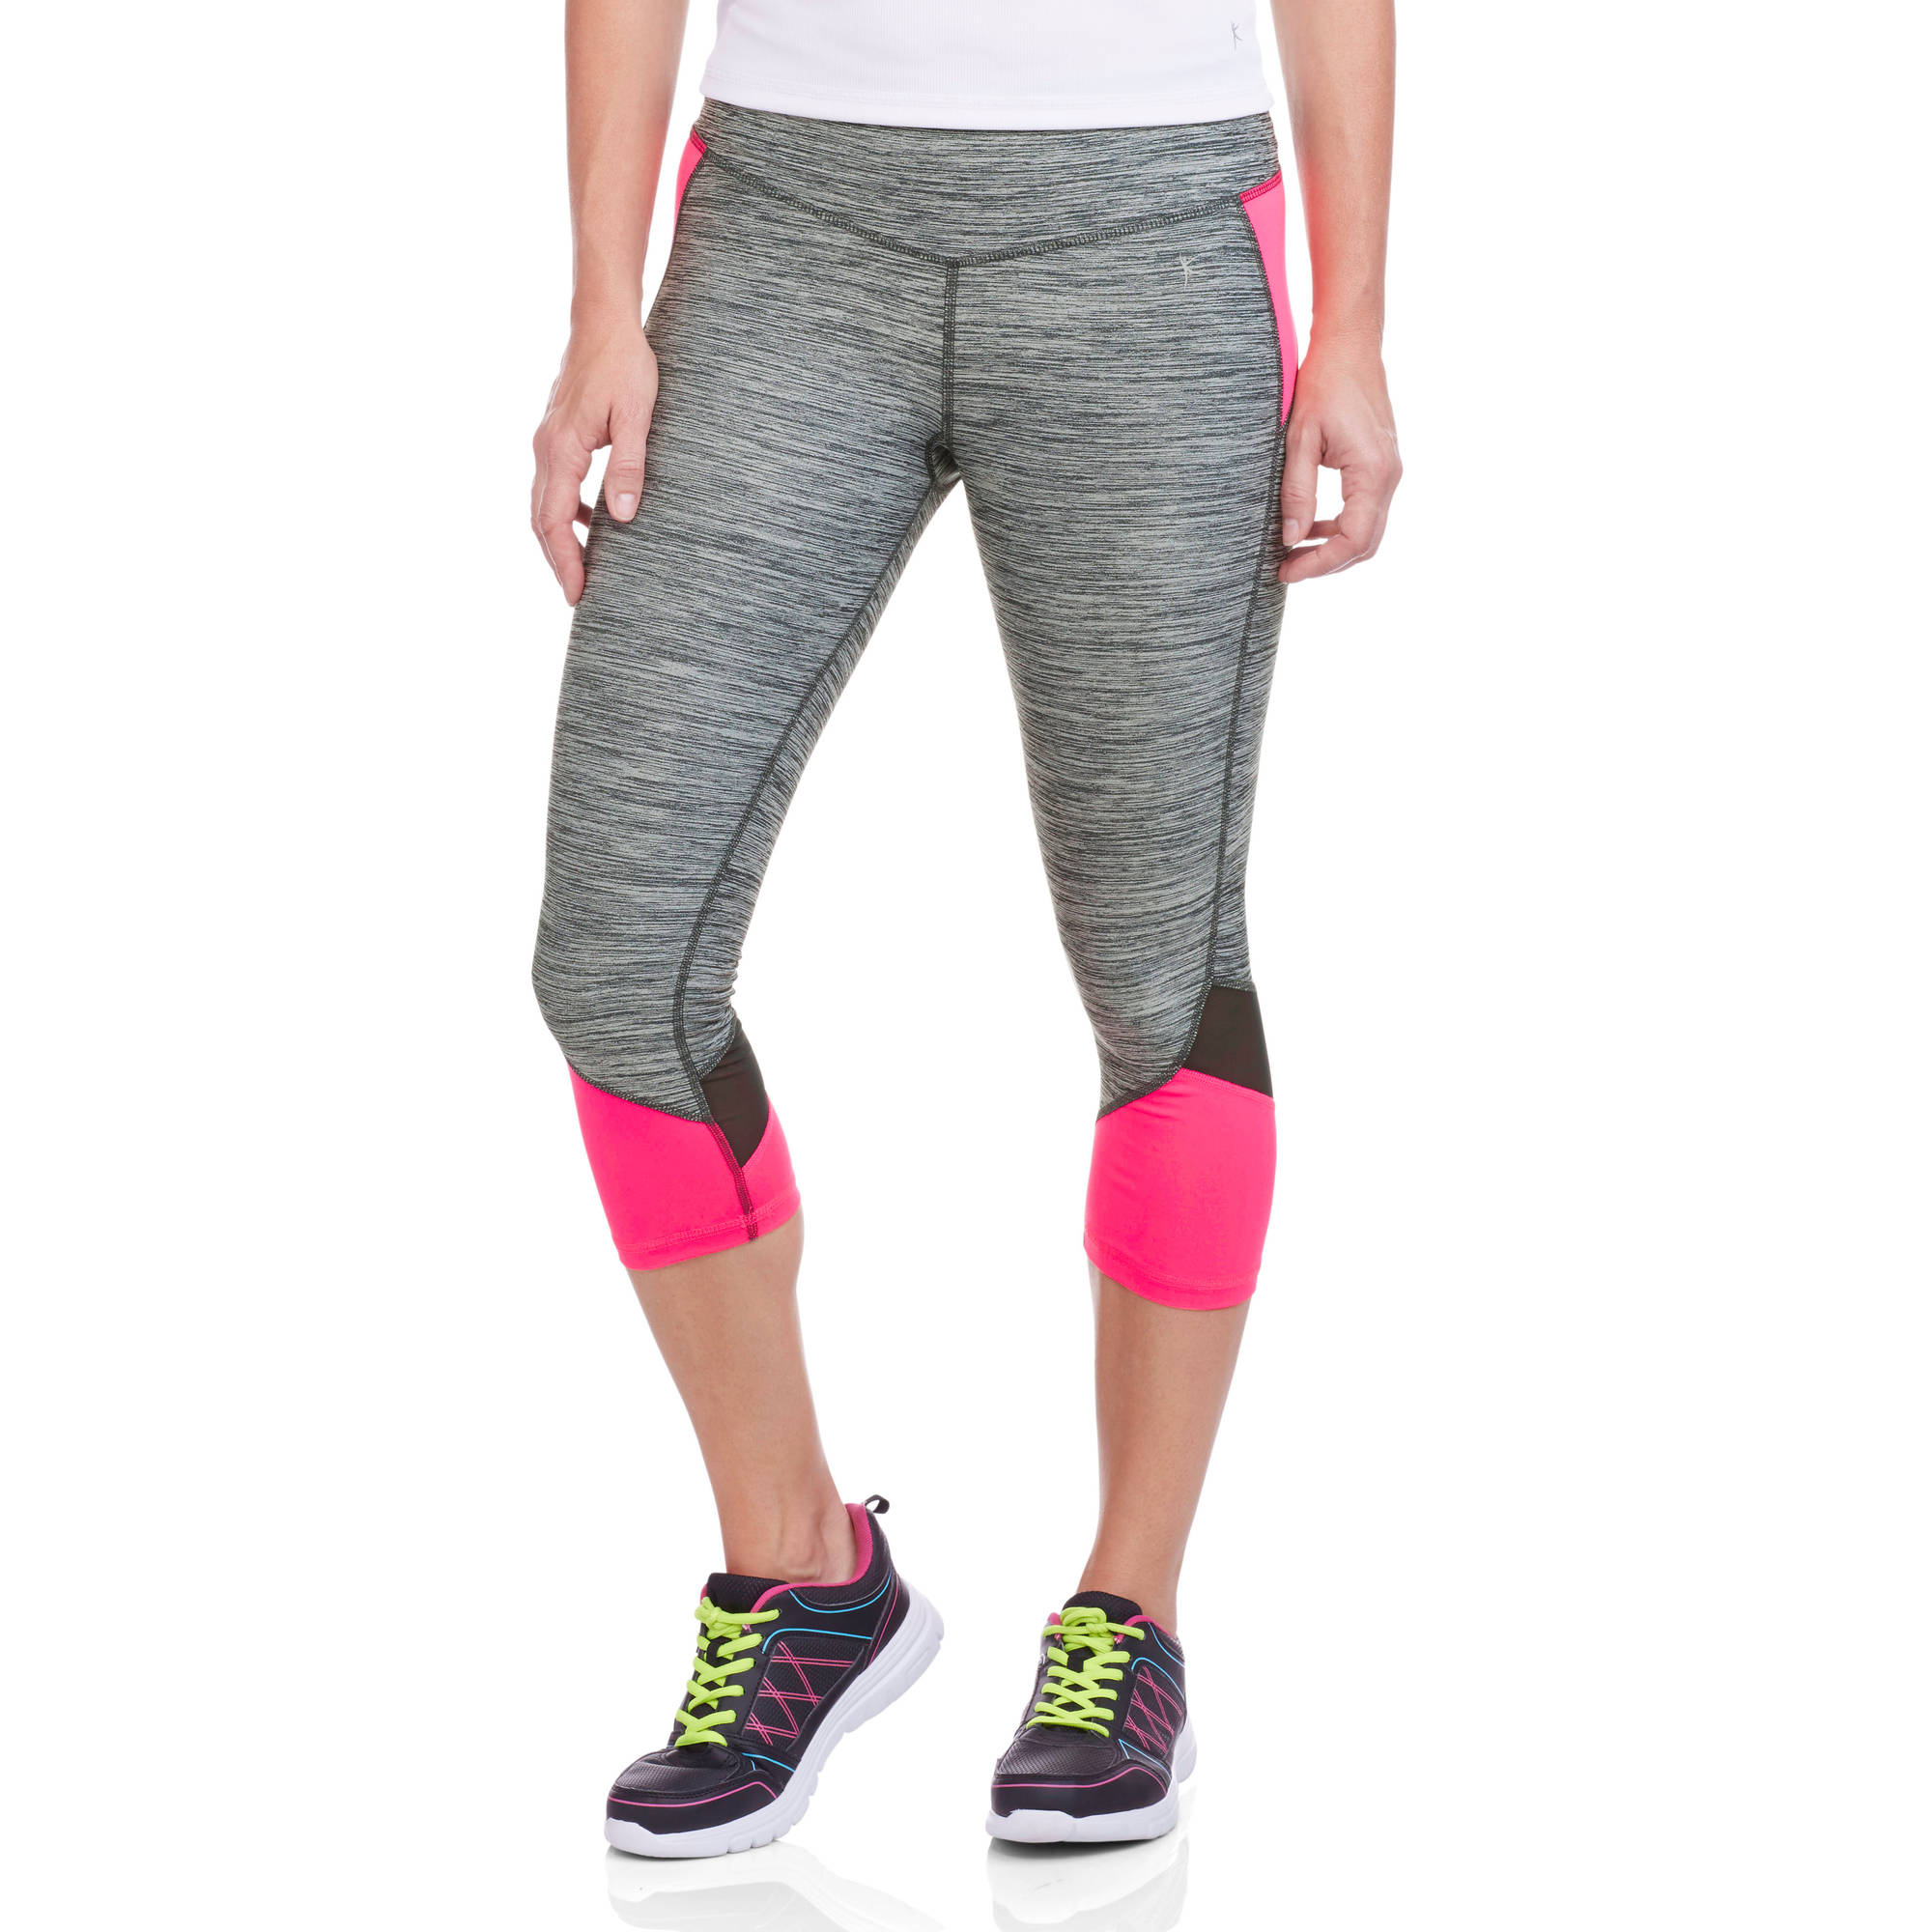 Danskin Now Women's Performance Capris with Mesh Detail